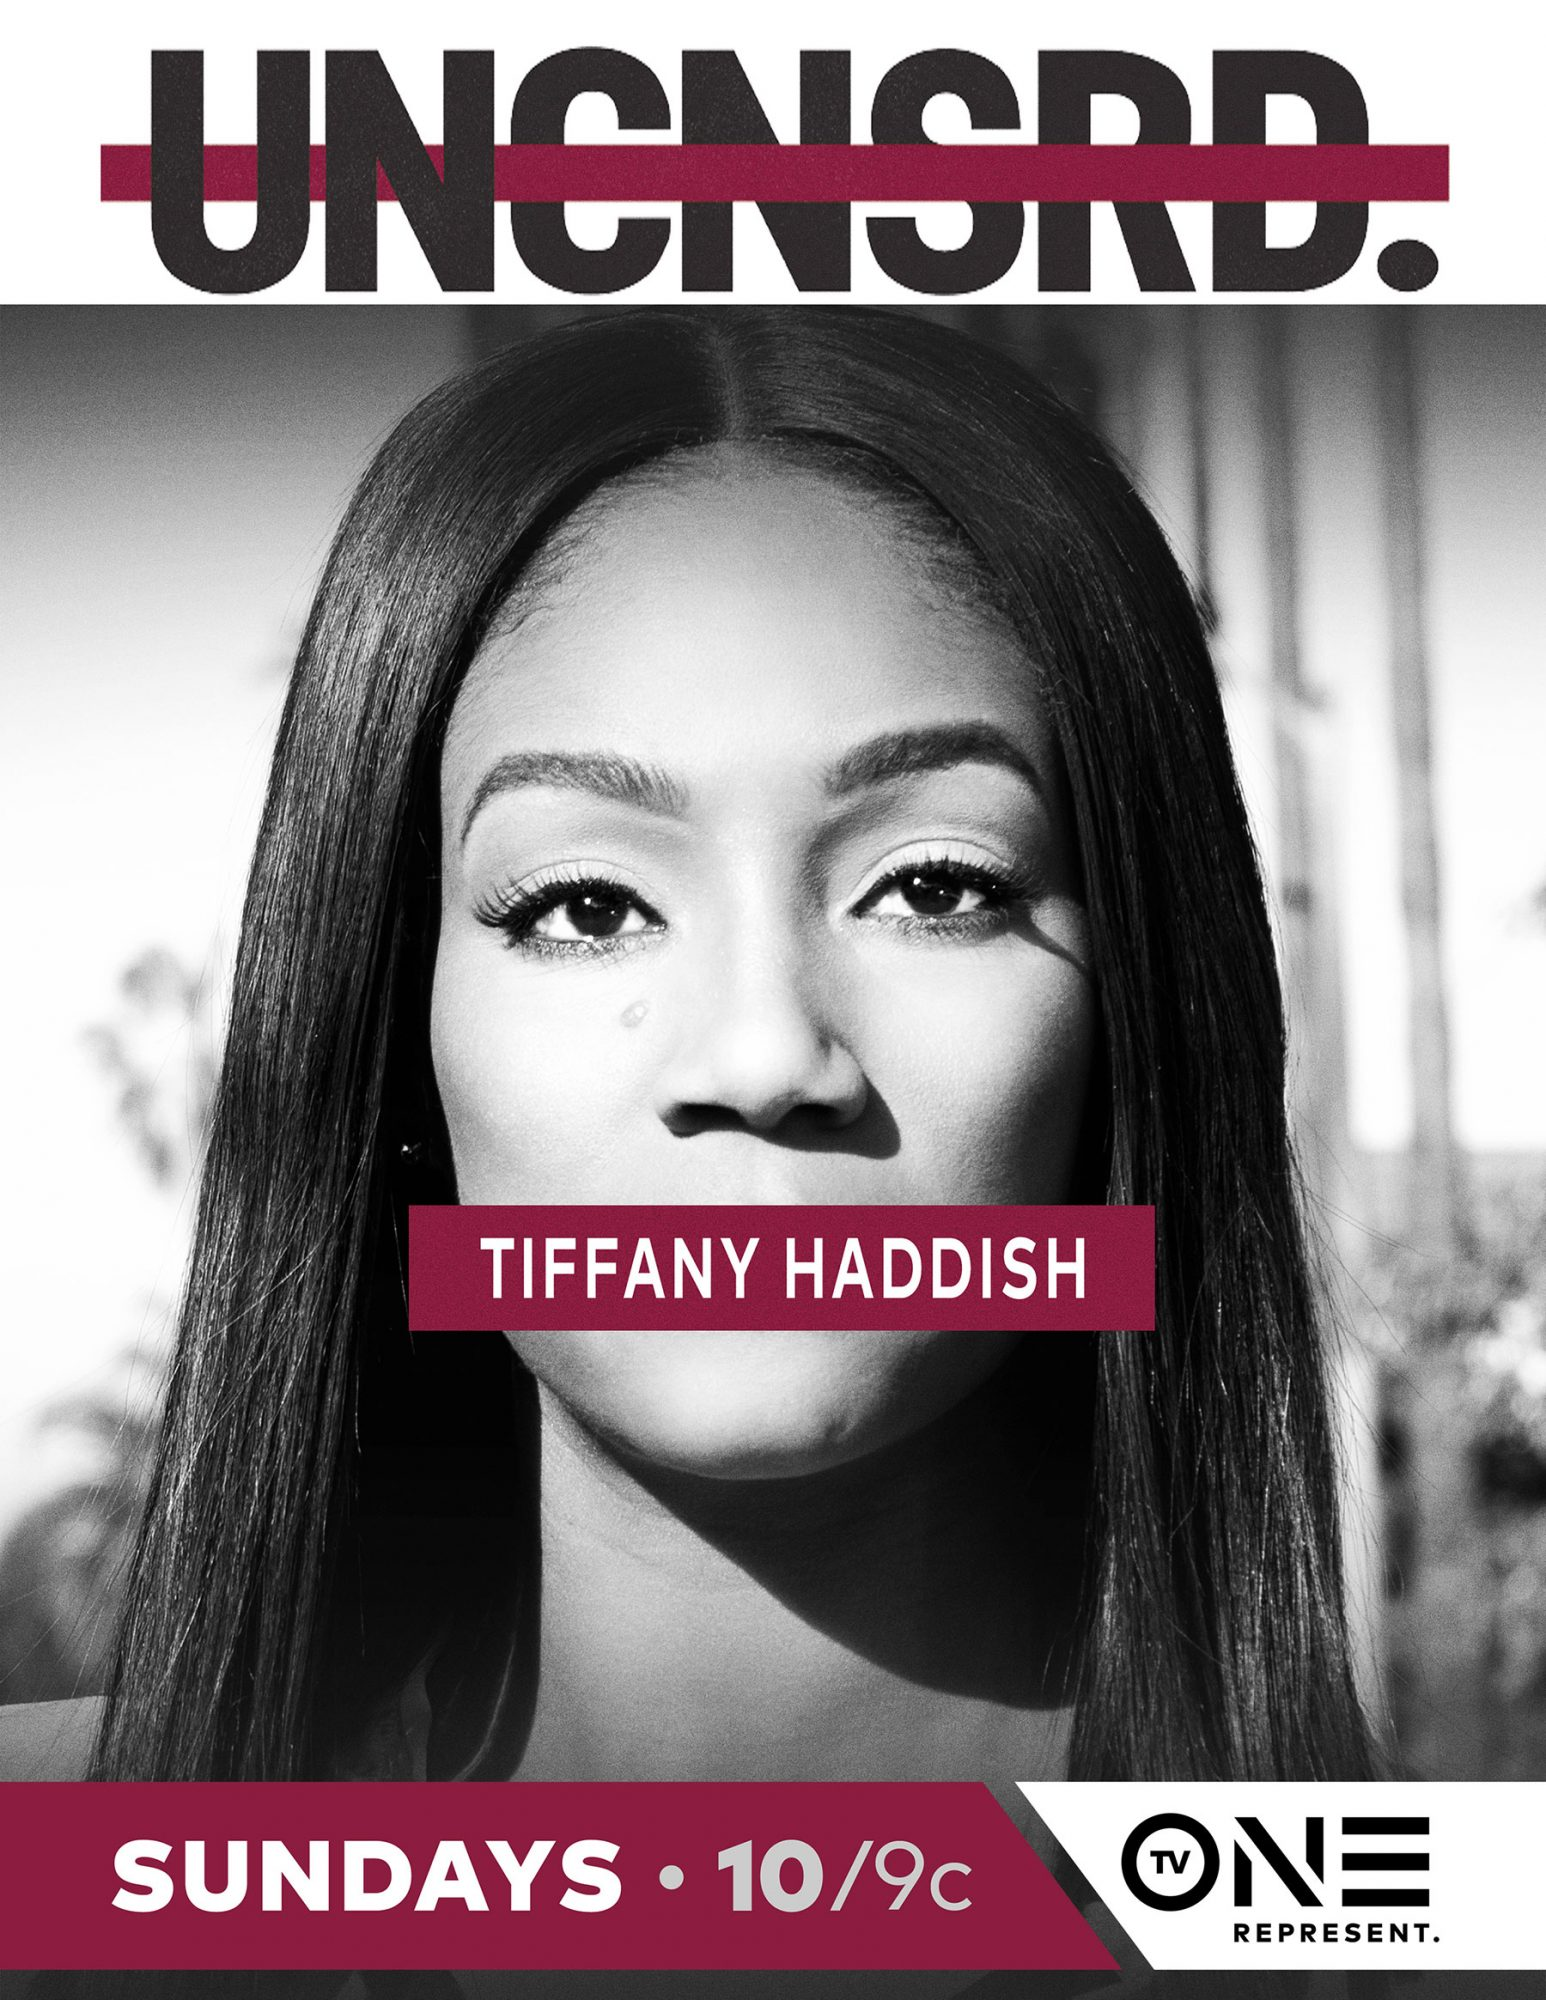 TV1_UNCNSRD_KA_TiffanyHaddish-8.5x11